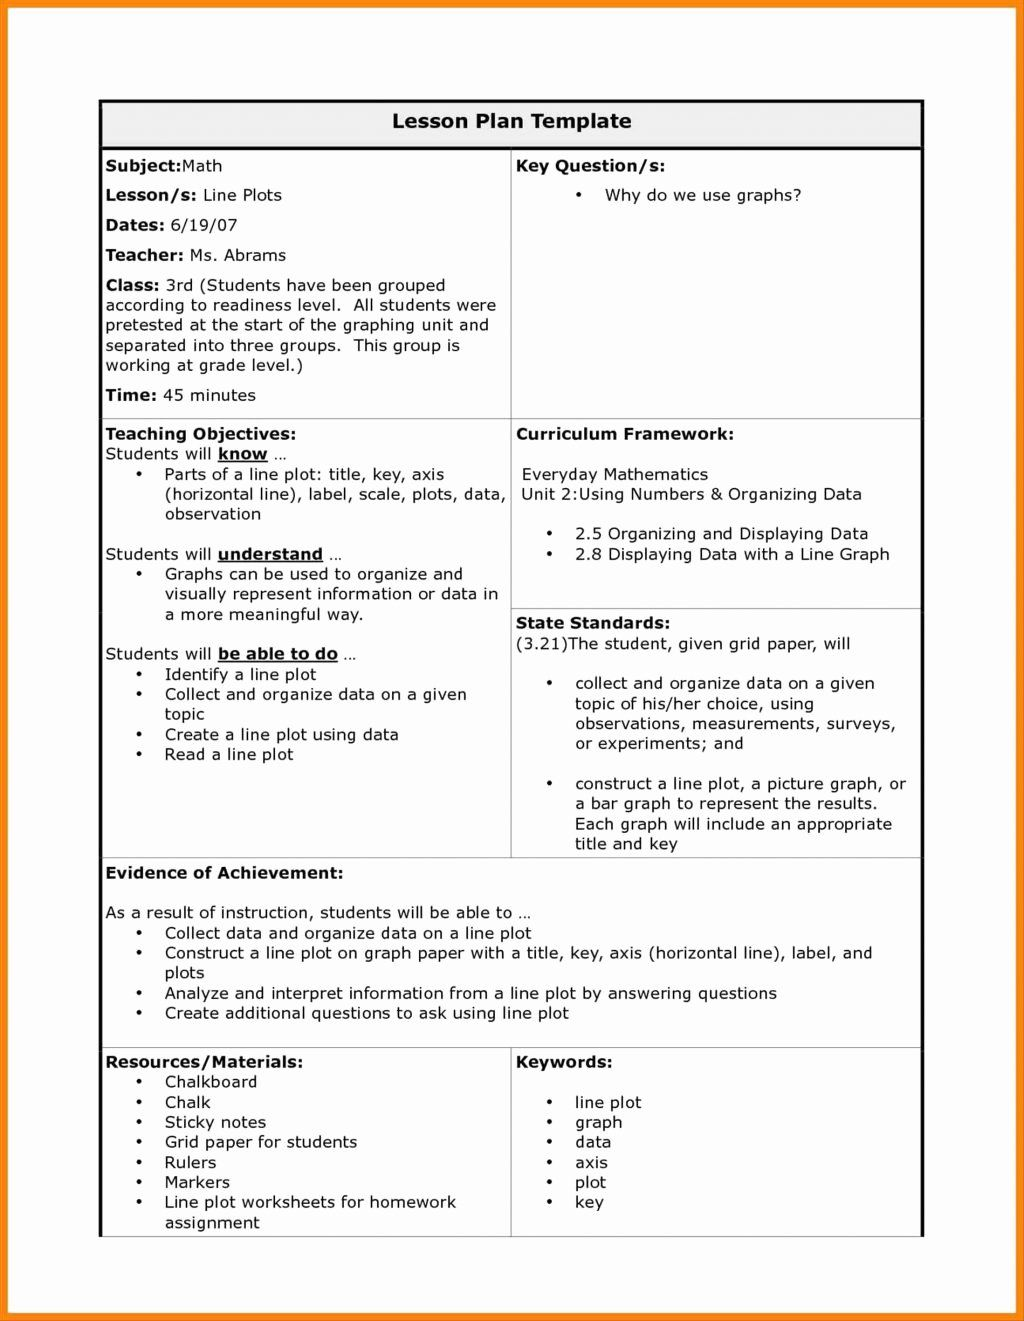 25 Florida Lesson Plan Template In